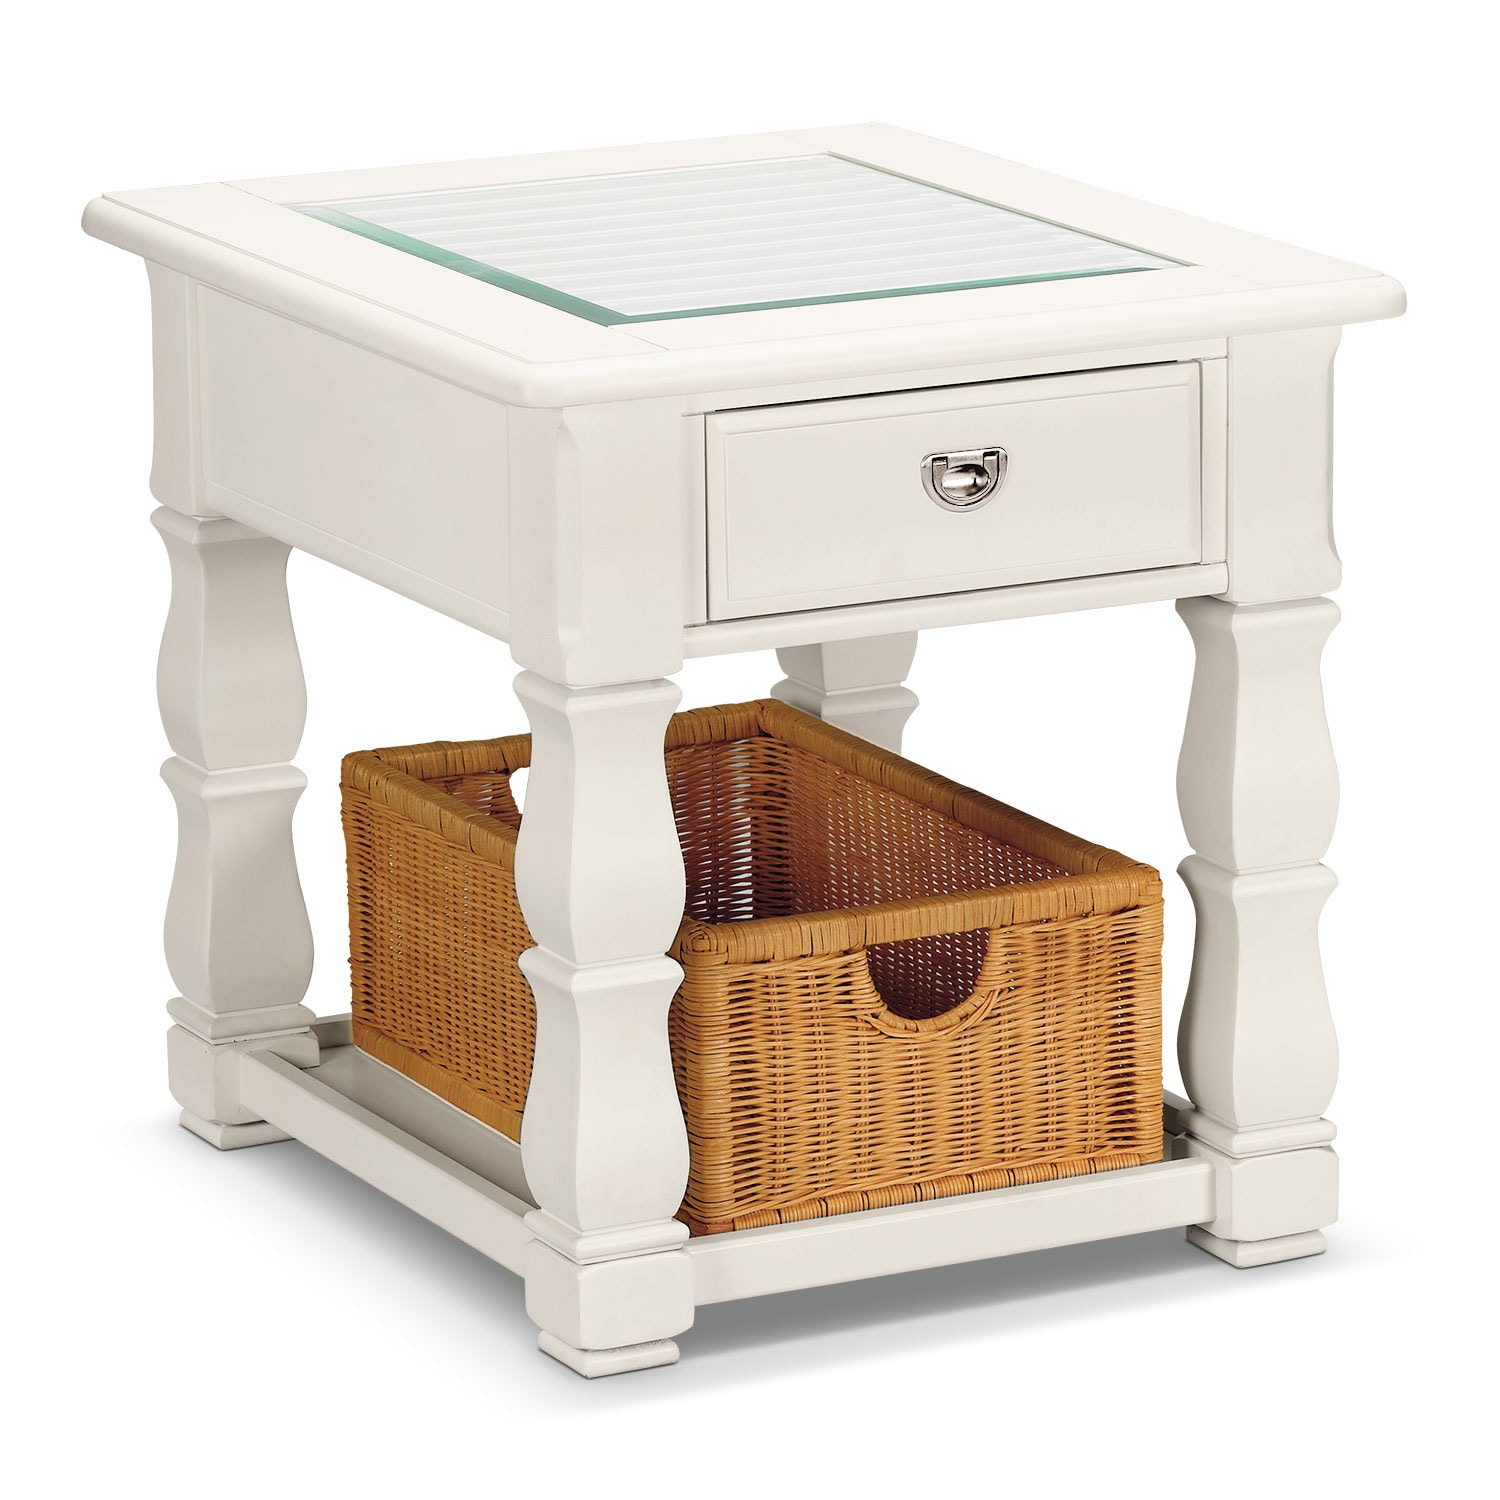 End table with drawer - Hover To Zoom